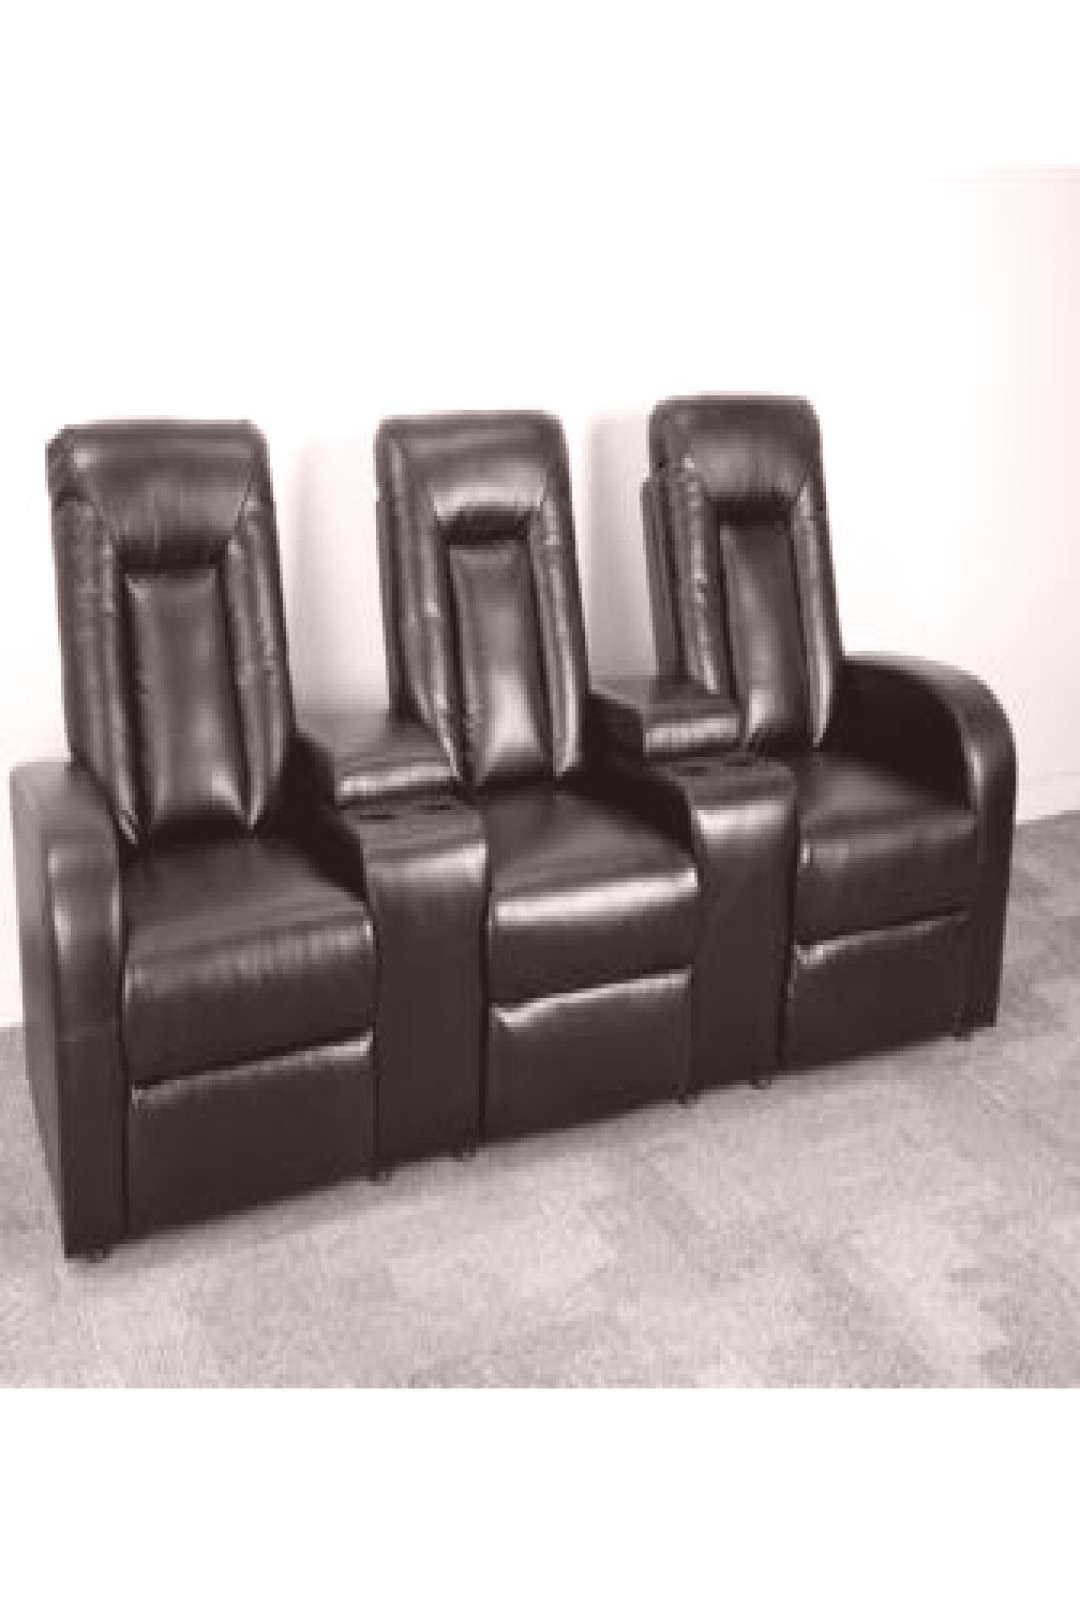 Black Leather 3-Seat Home Theater Recliner w/ Storage Consoles - Flash Furniture BT-70259-3-BK-GG